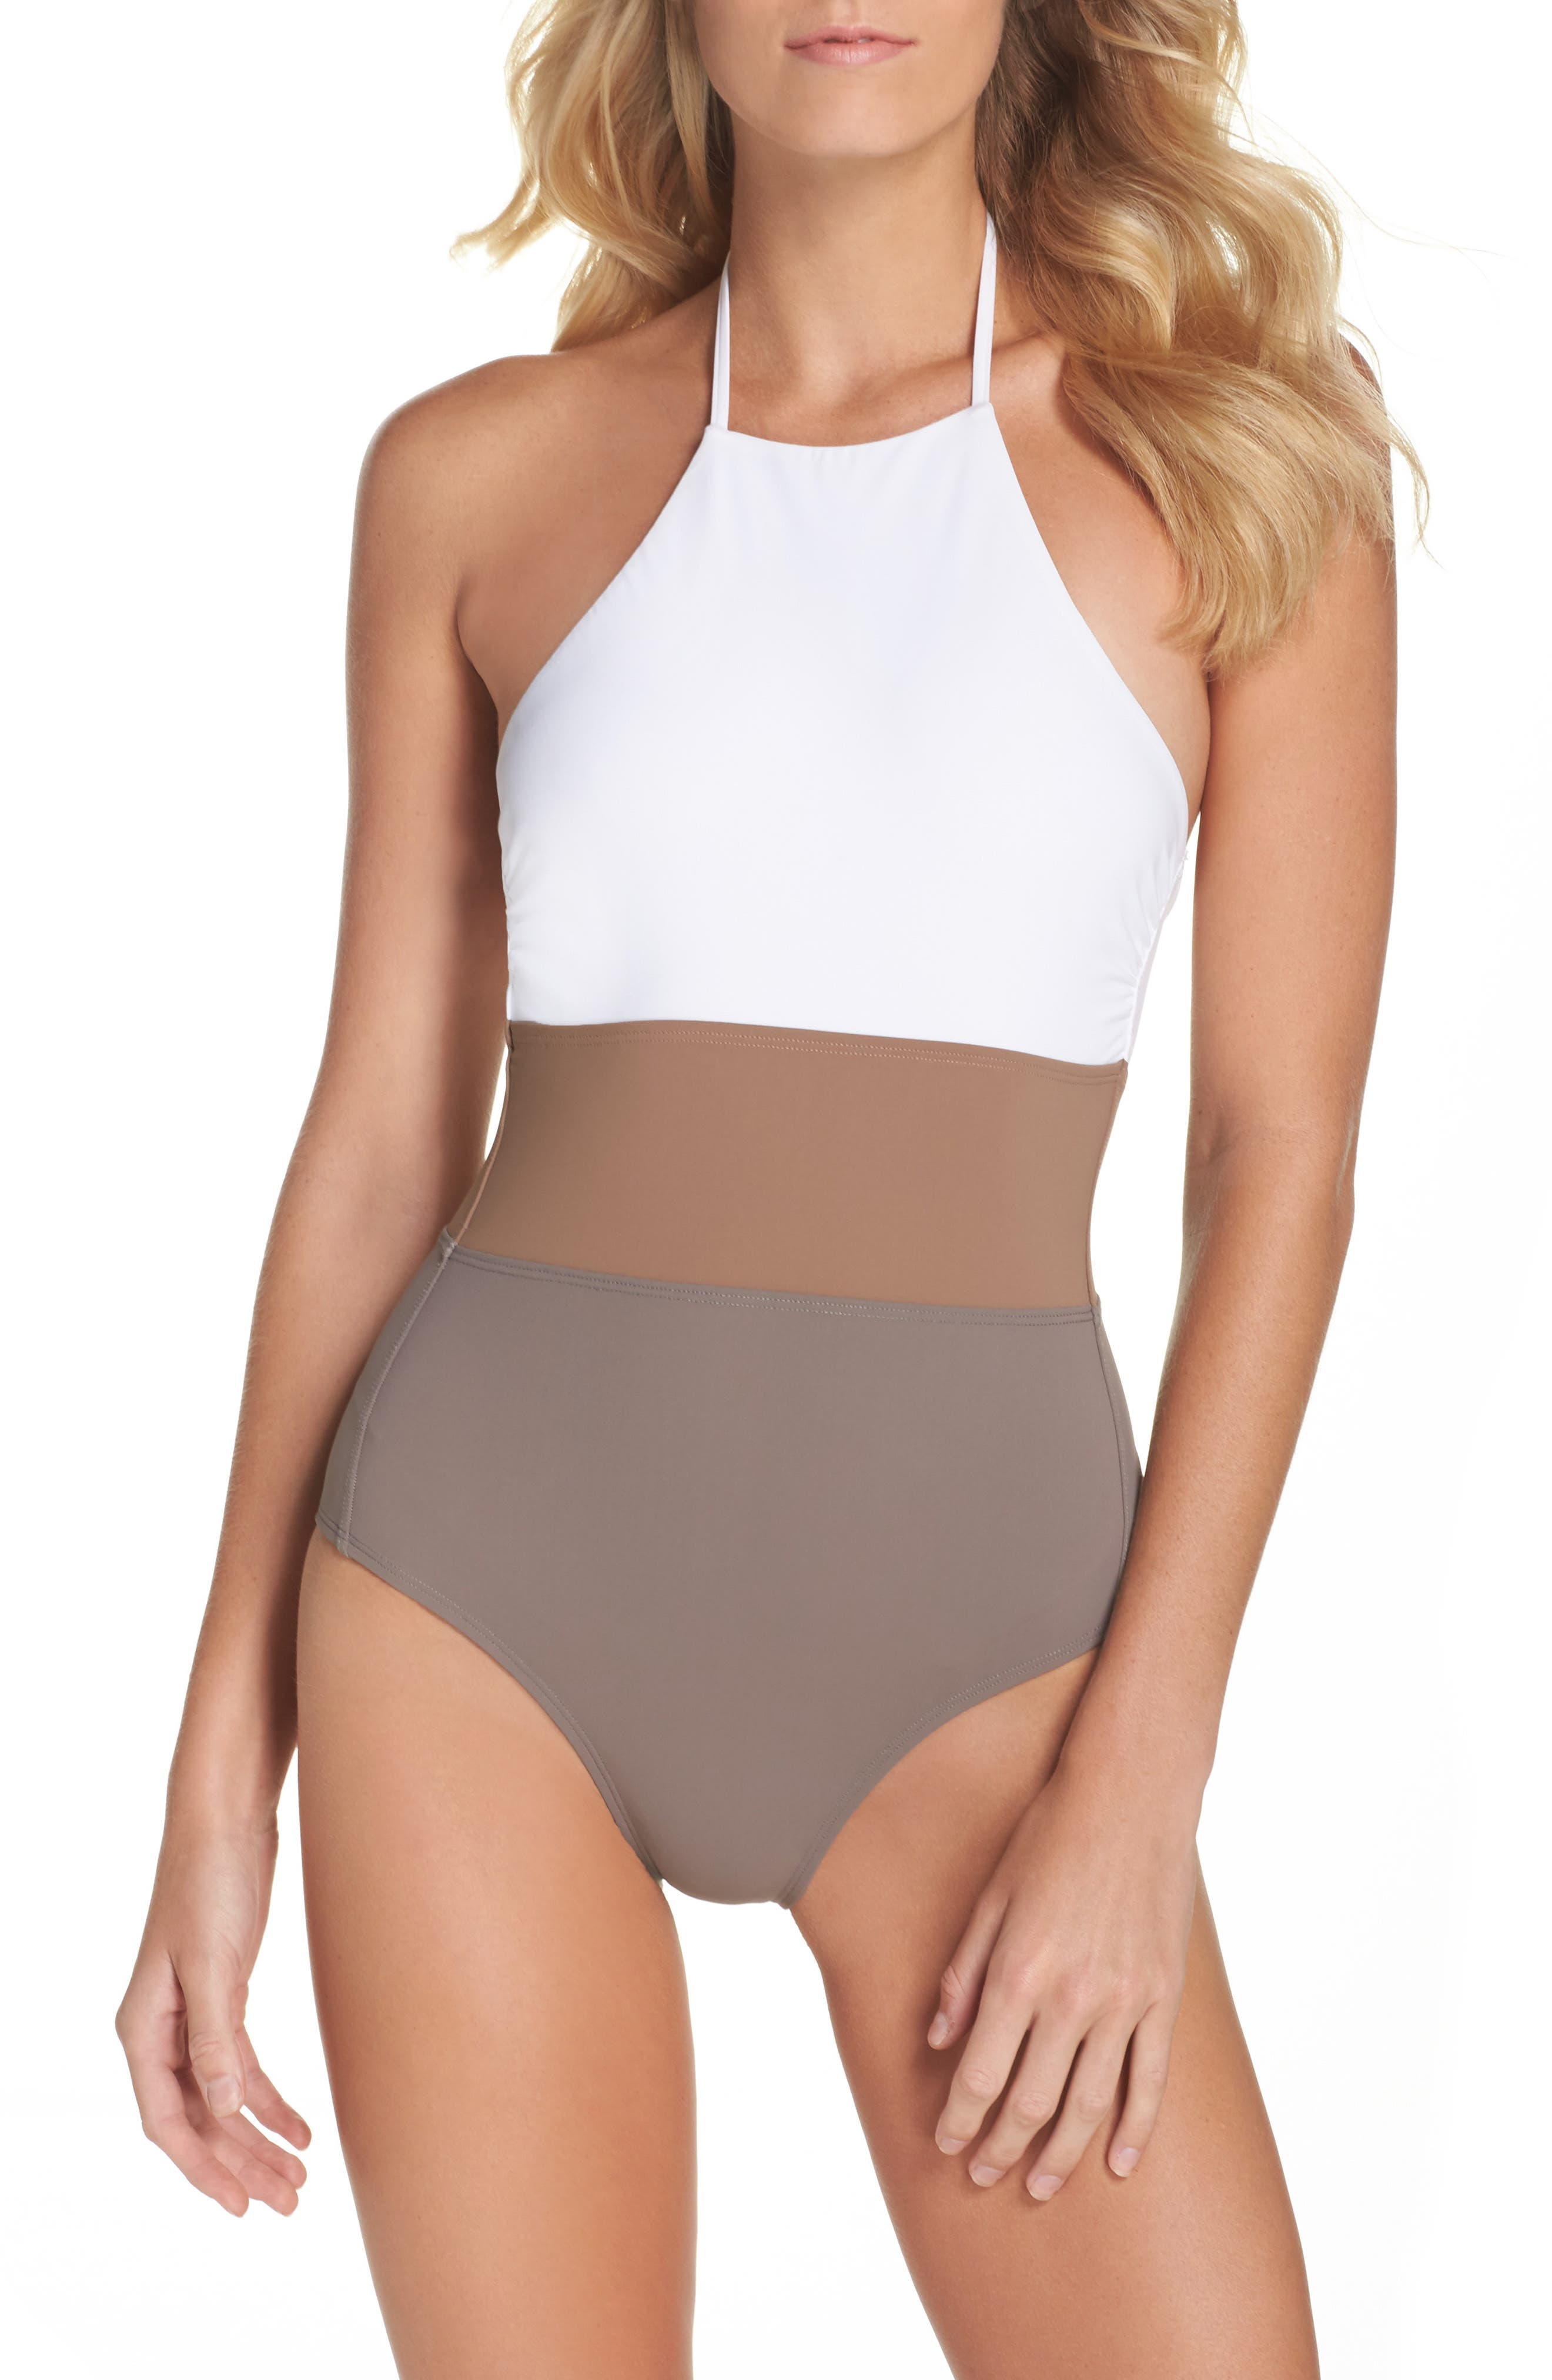 Halter One-Piece Swimsuit,                         Main,                         color, White/ Clay/ Stone